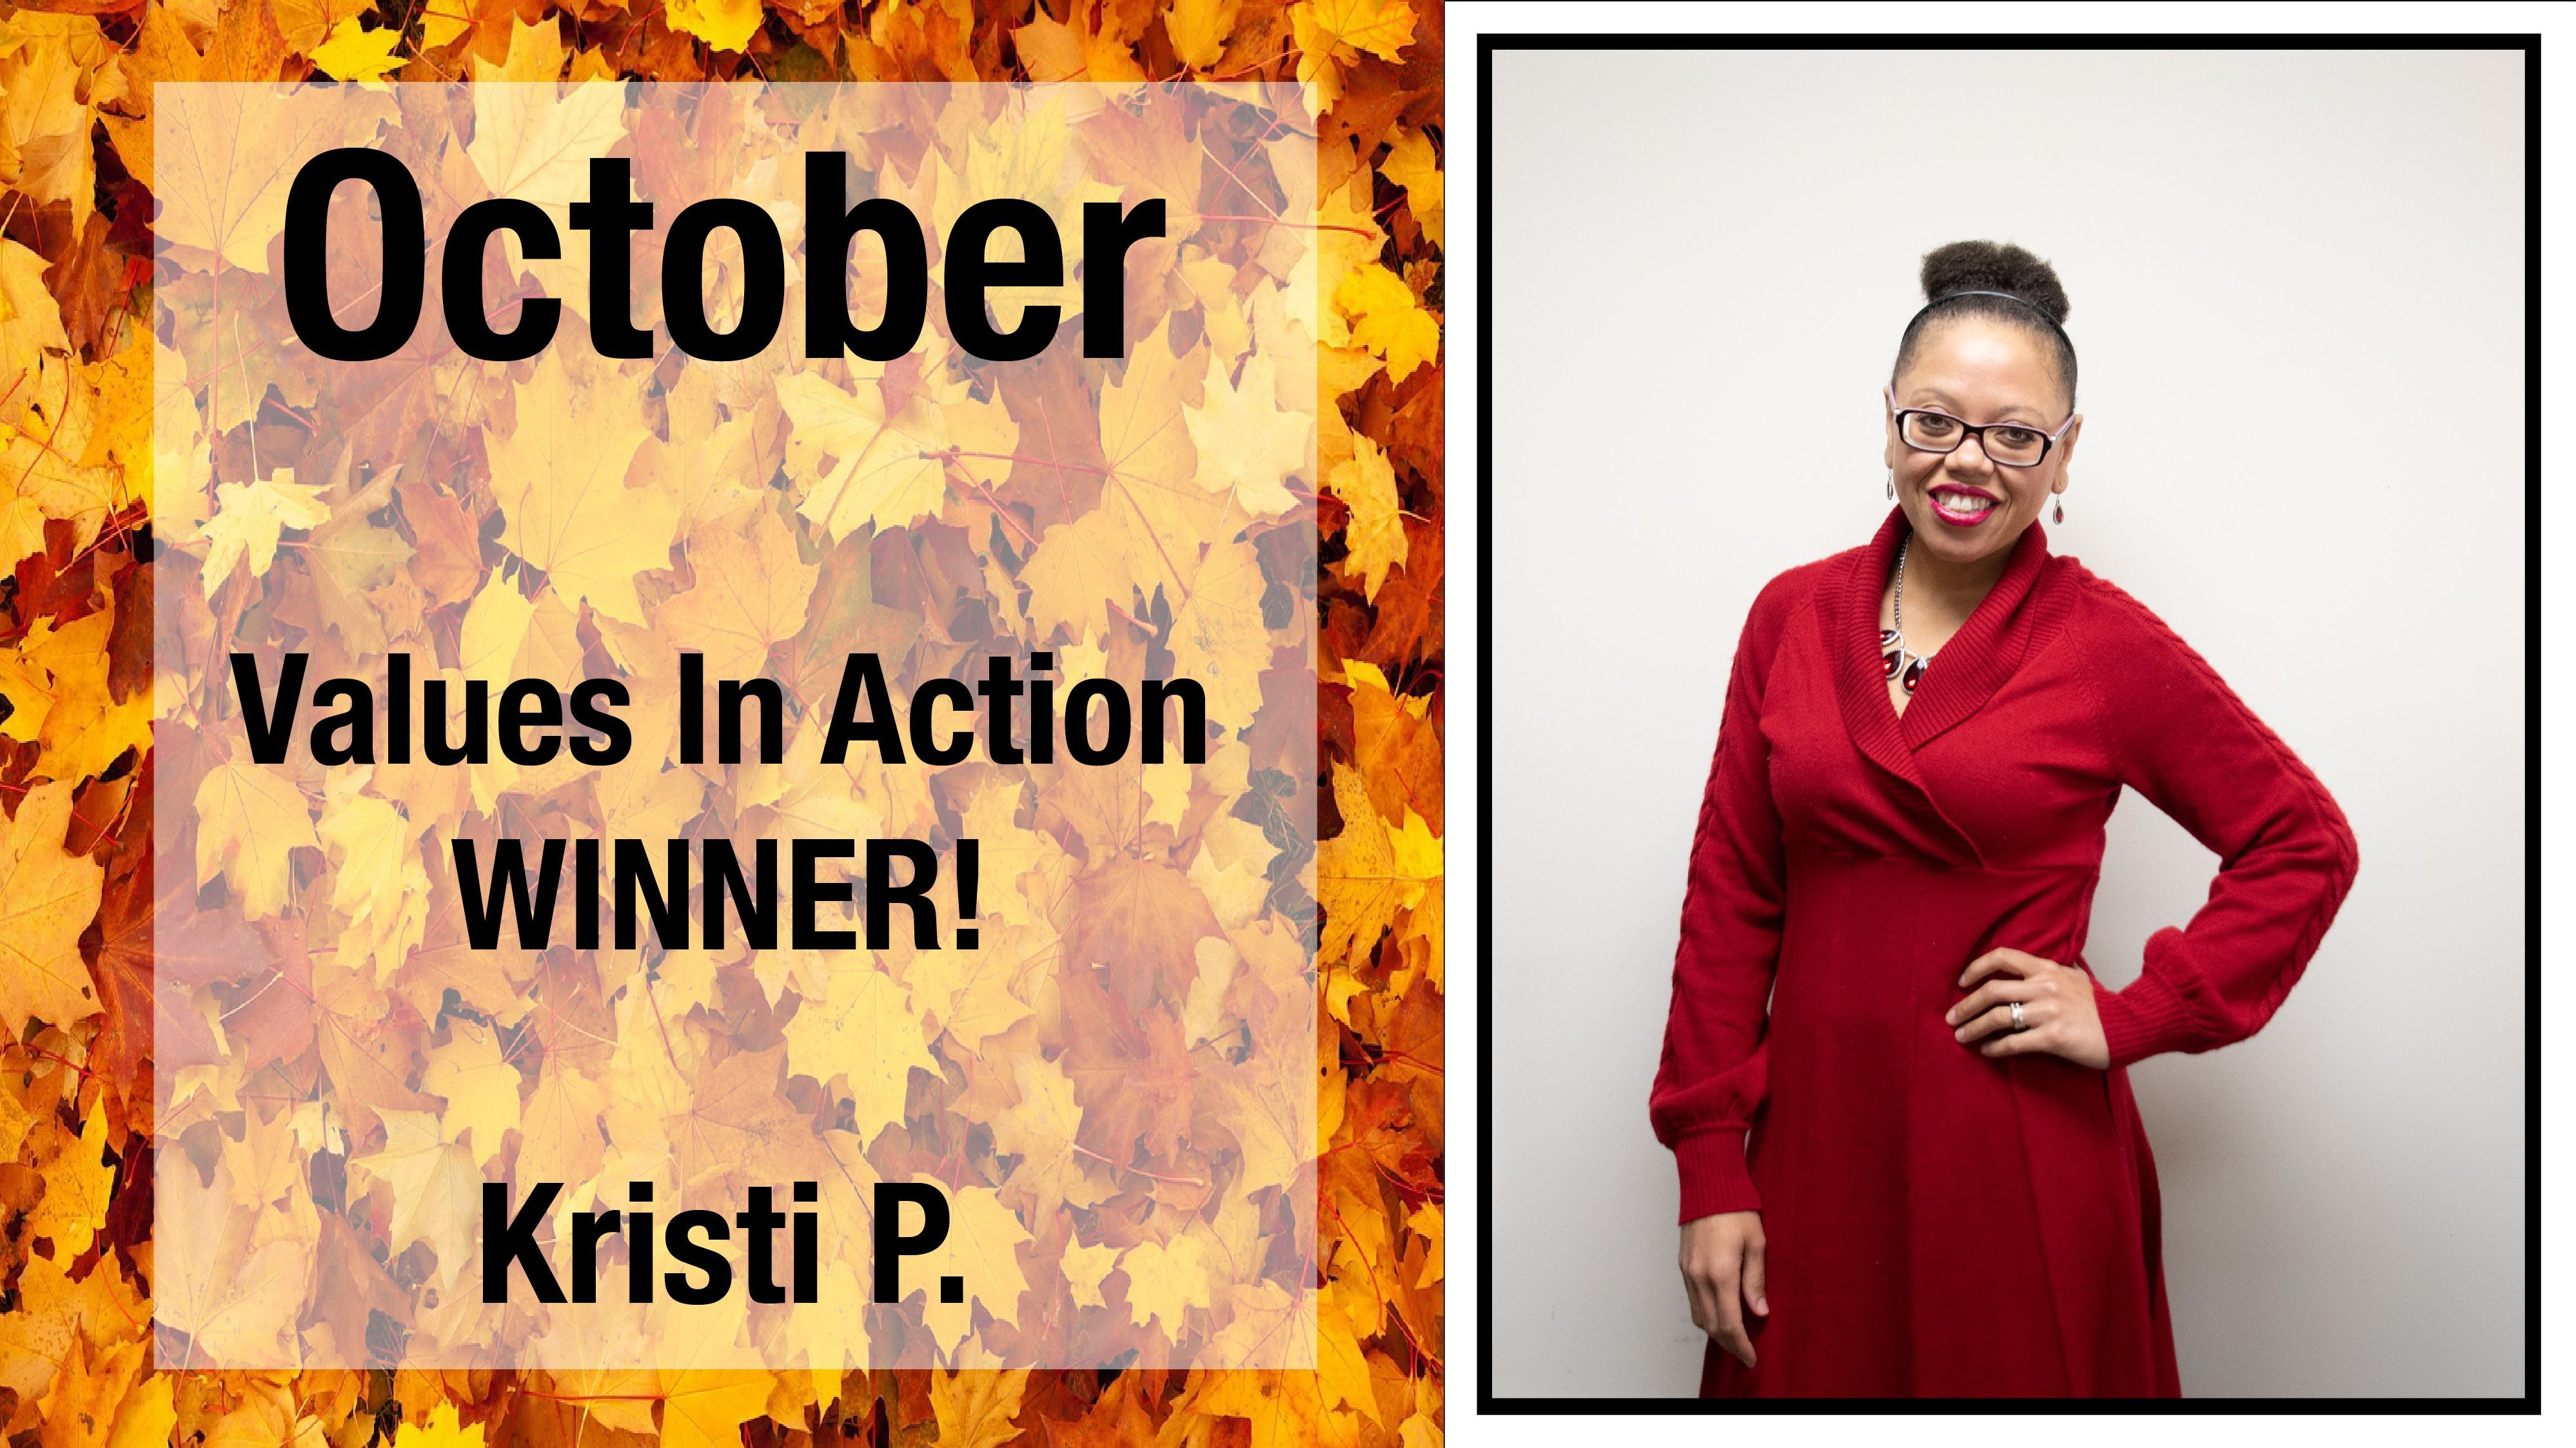 Teamwork Tuesday Congratulations to Kristi, our October